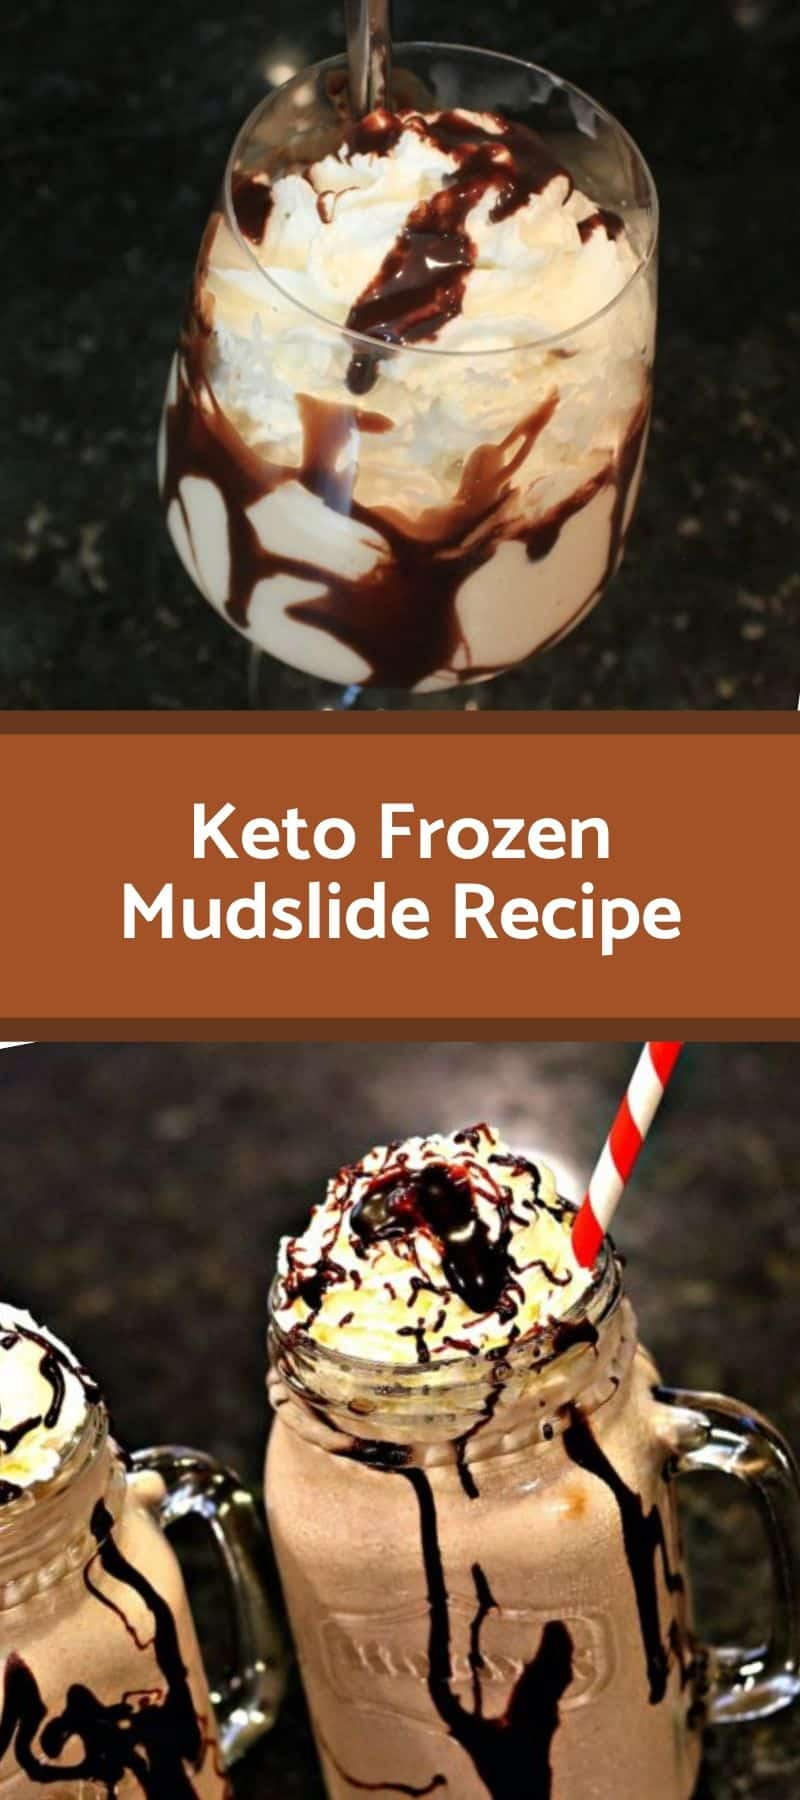 Keto Frozen Mudslide Recipe 3